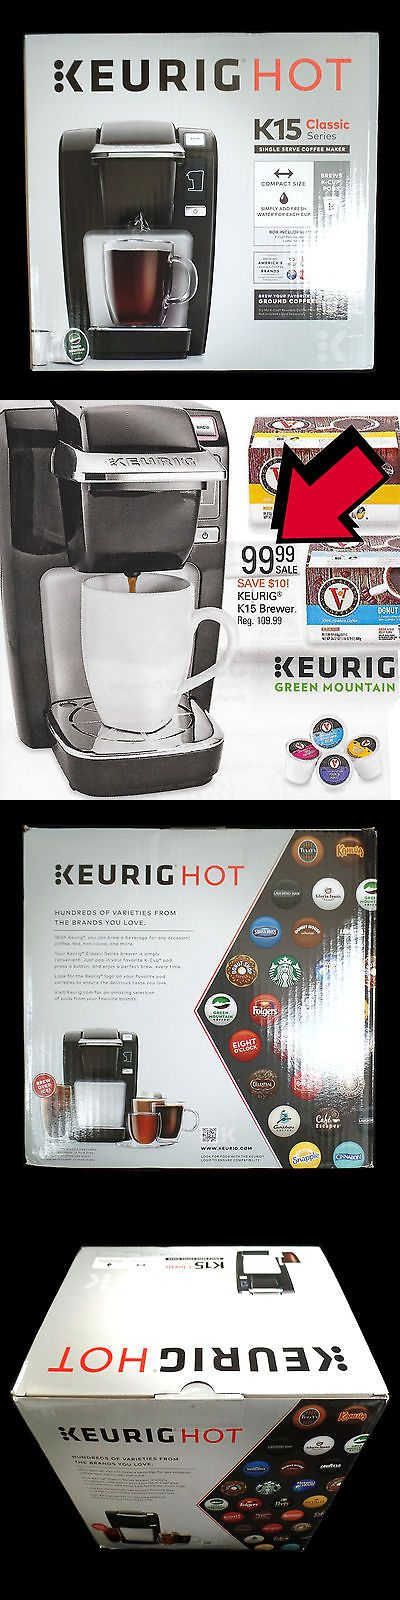 Single Serve Brewers 156775: Keurig K-Cup Single Serve Coffee Maker K15 Classic Black New In Box -> BUY IT NOW ONLY: $74.1 on eBay!